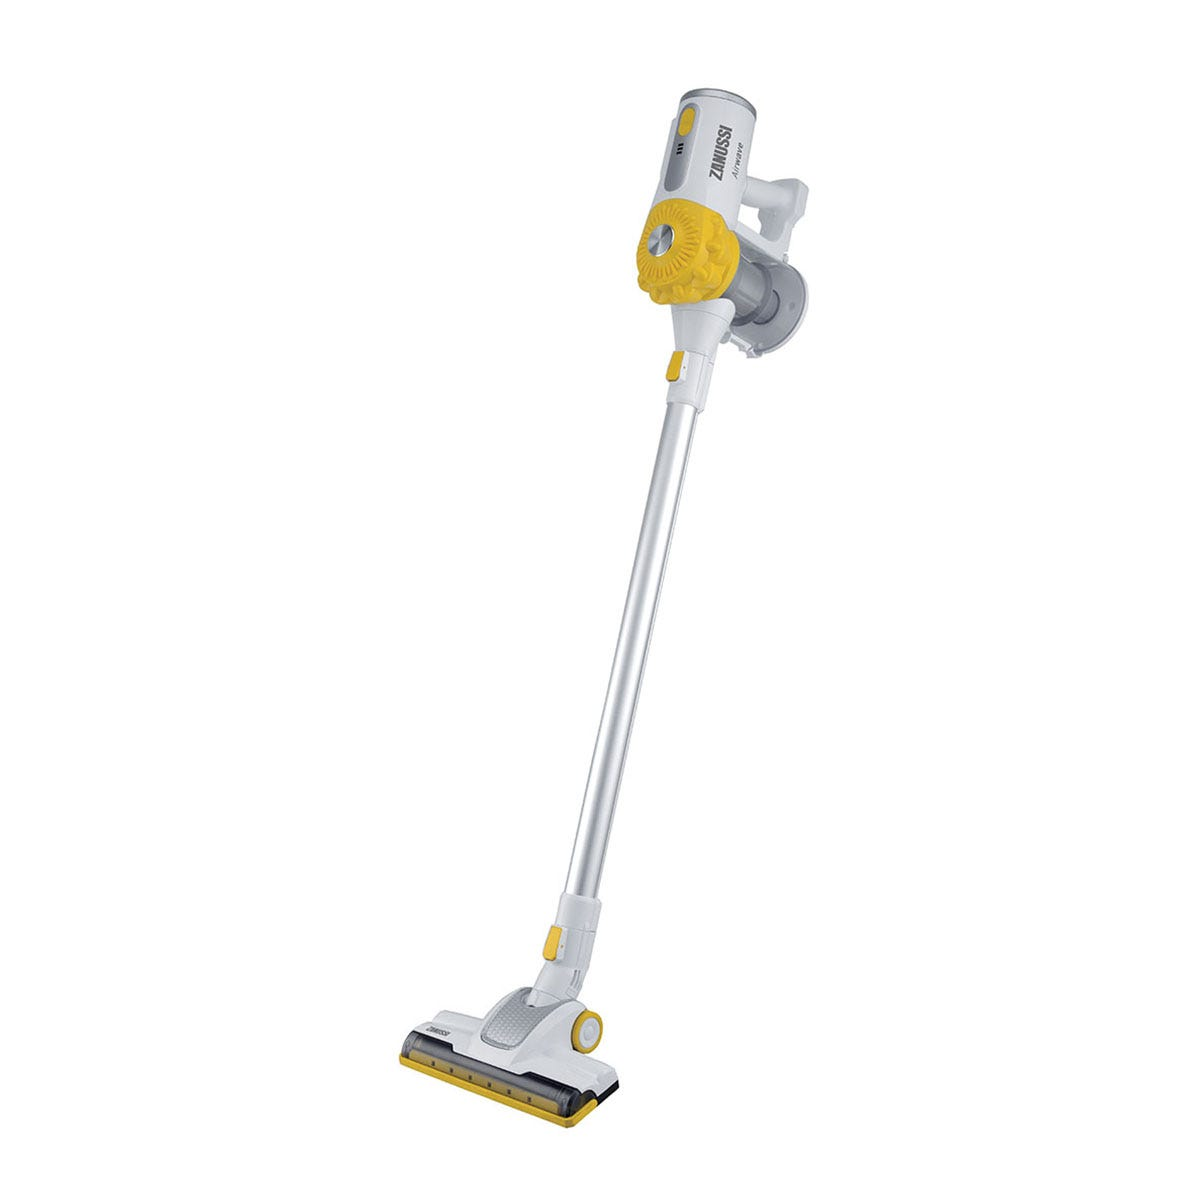 Zanussi ZHS-32802 Cordless Rechargeable Hand Stick Vacuum Cleaner - Yellow